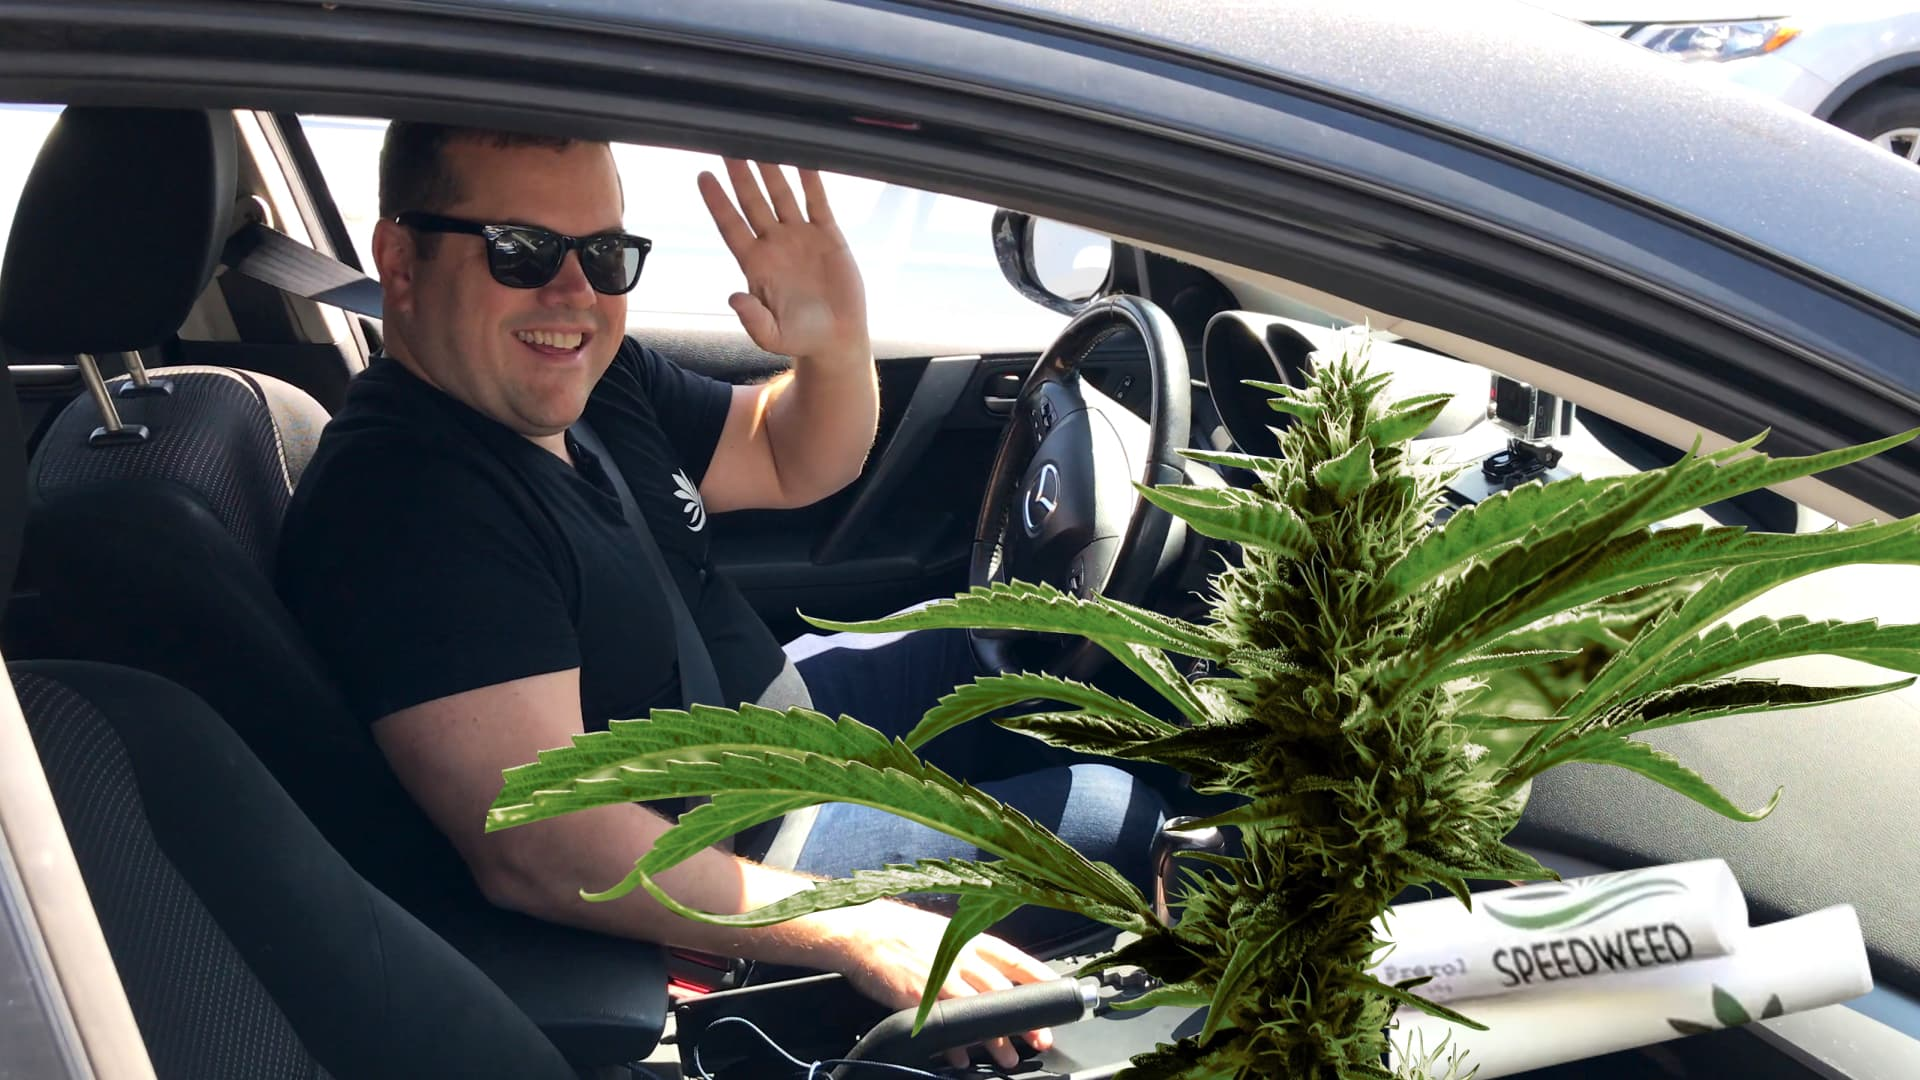 What it's like to deliver weed around Los Angeles